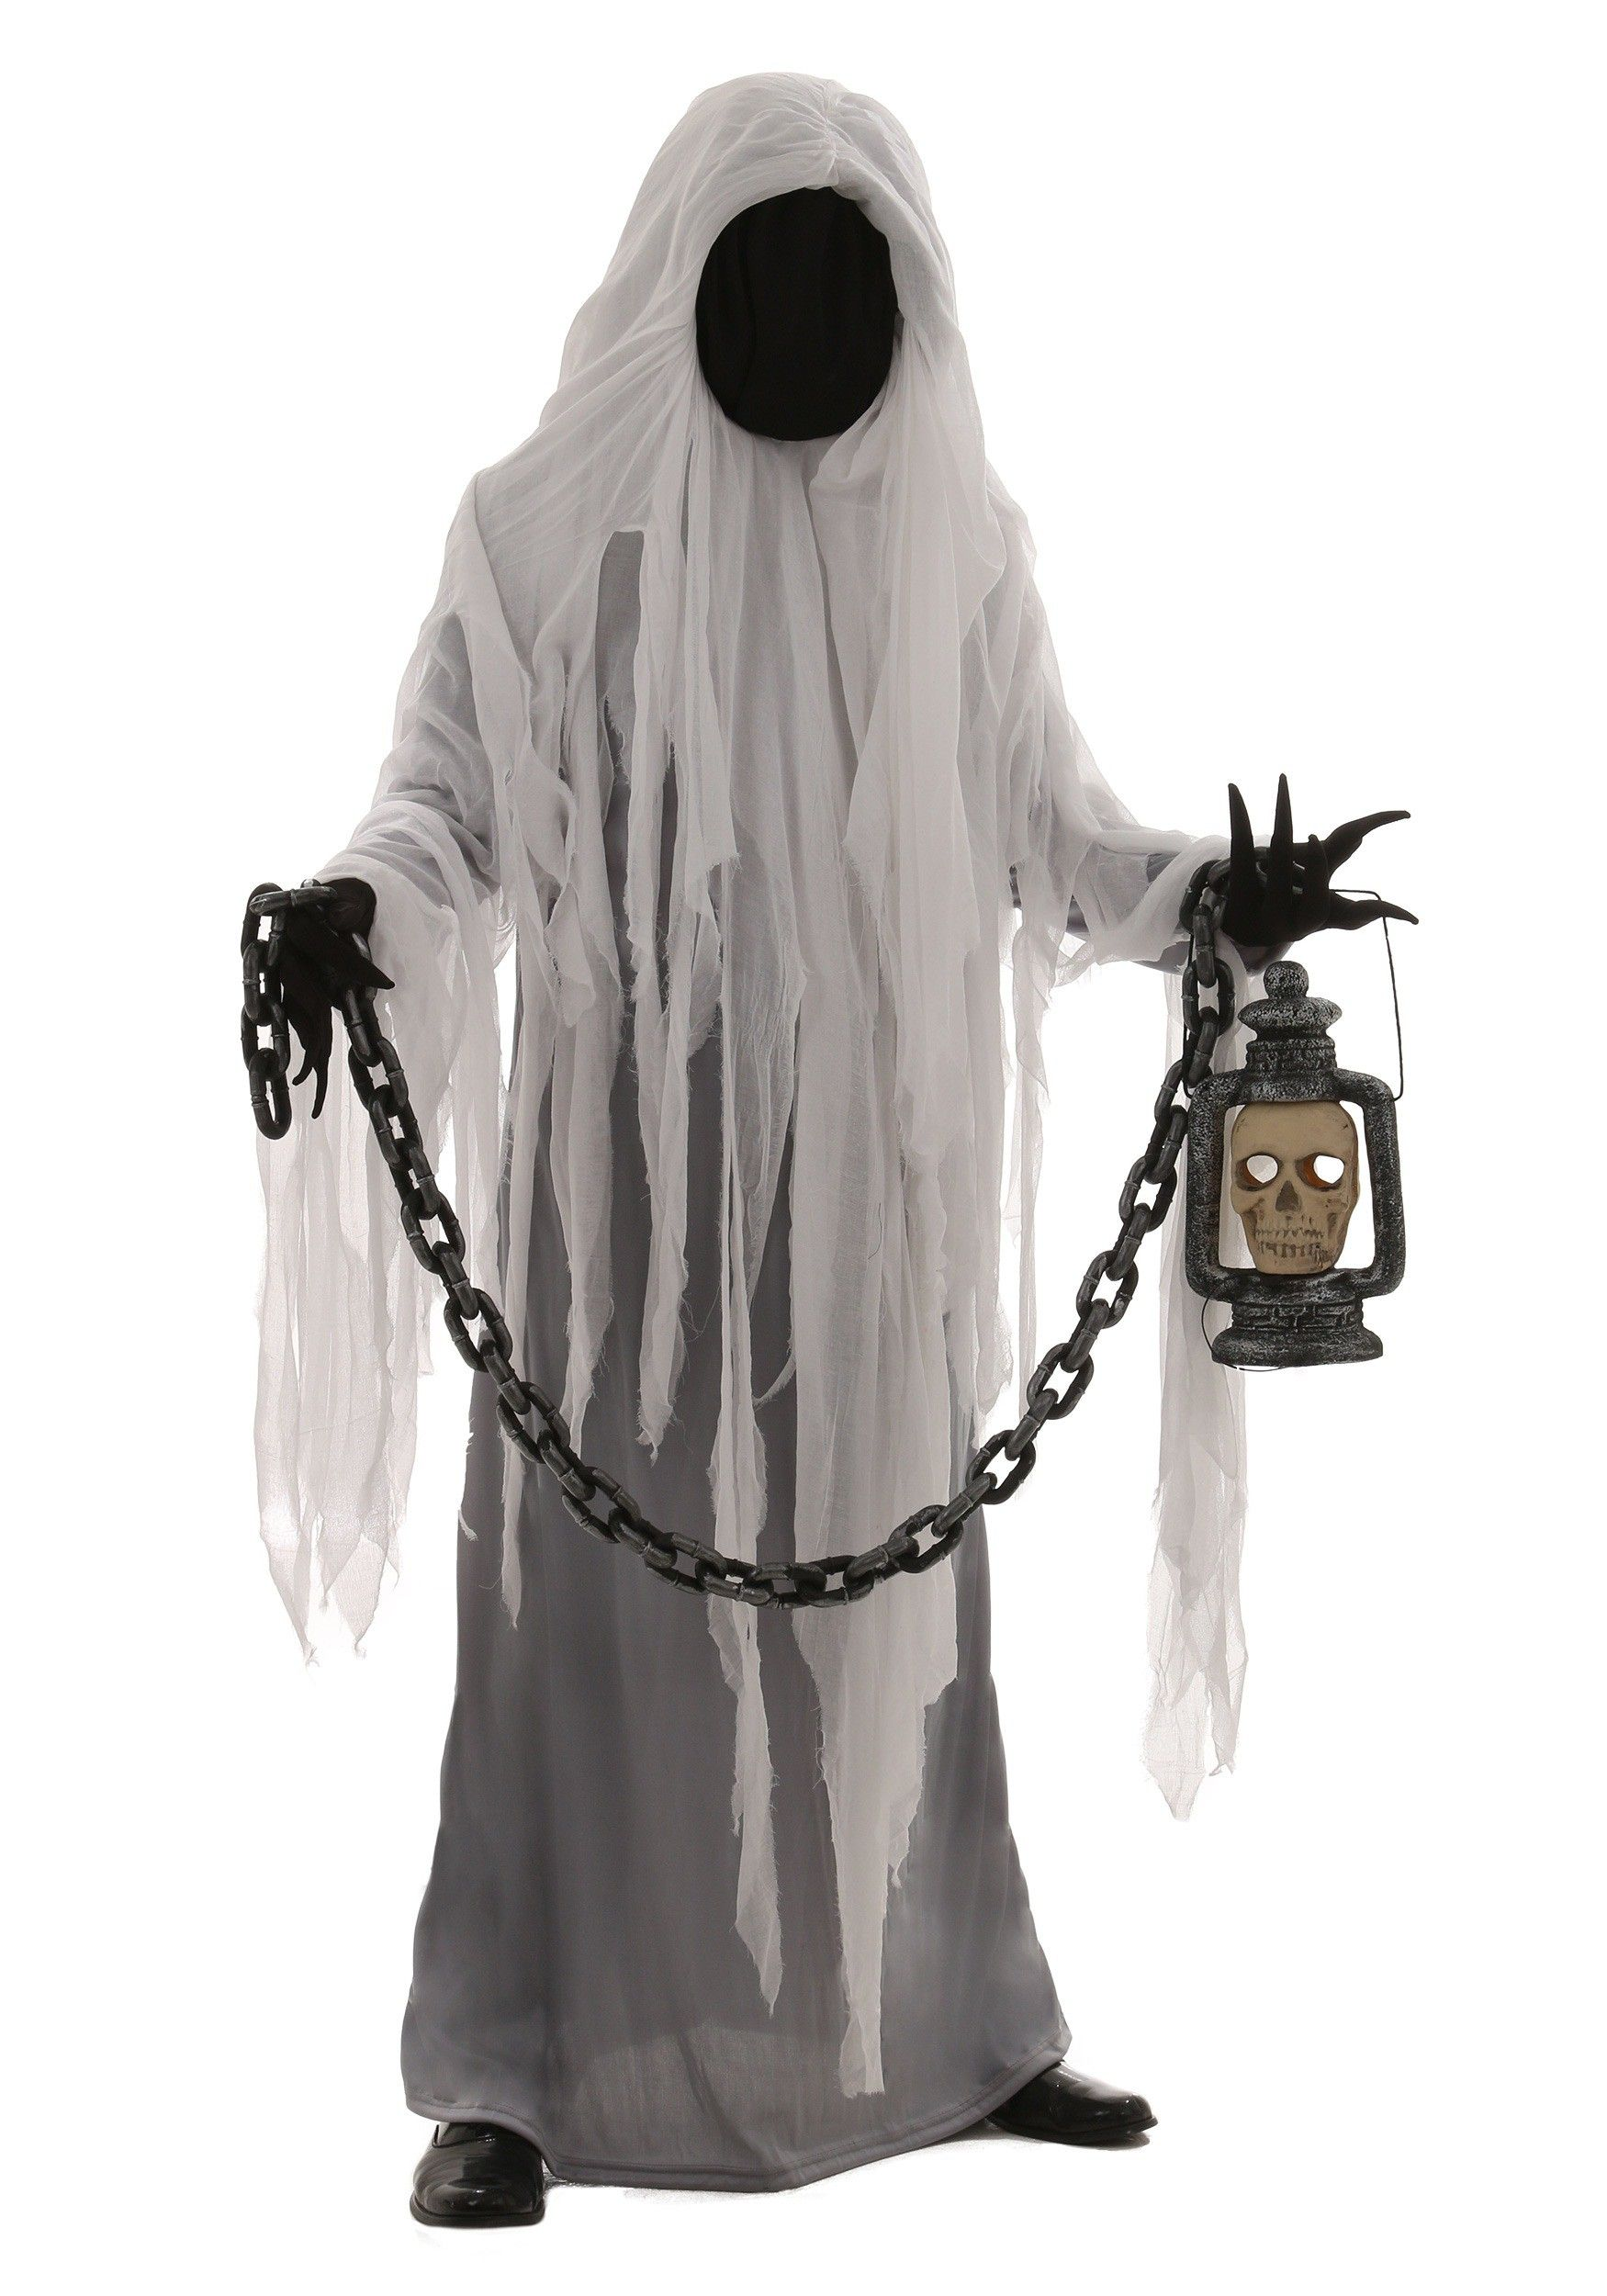 Krampus costume for sale - This Adult Spooky Ghost Costume Is The Type Of Look That Even Makes Real Ghosts Tremble In Fear